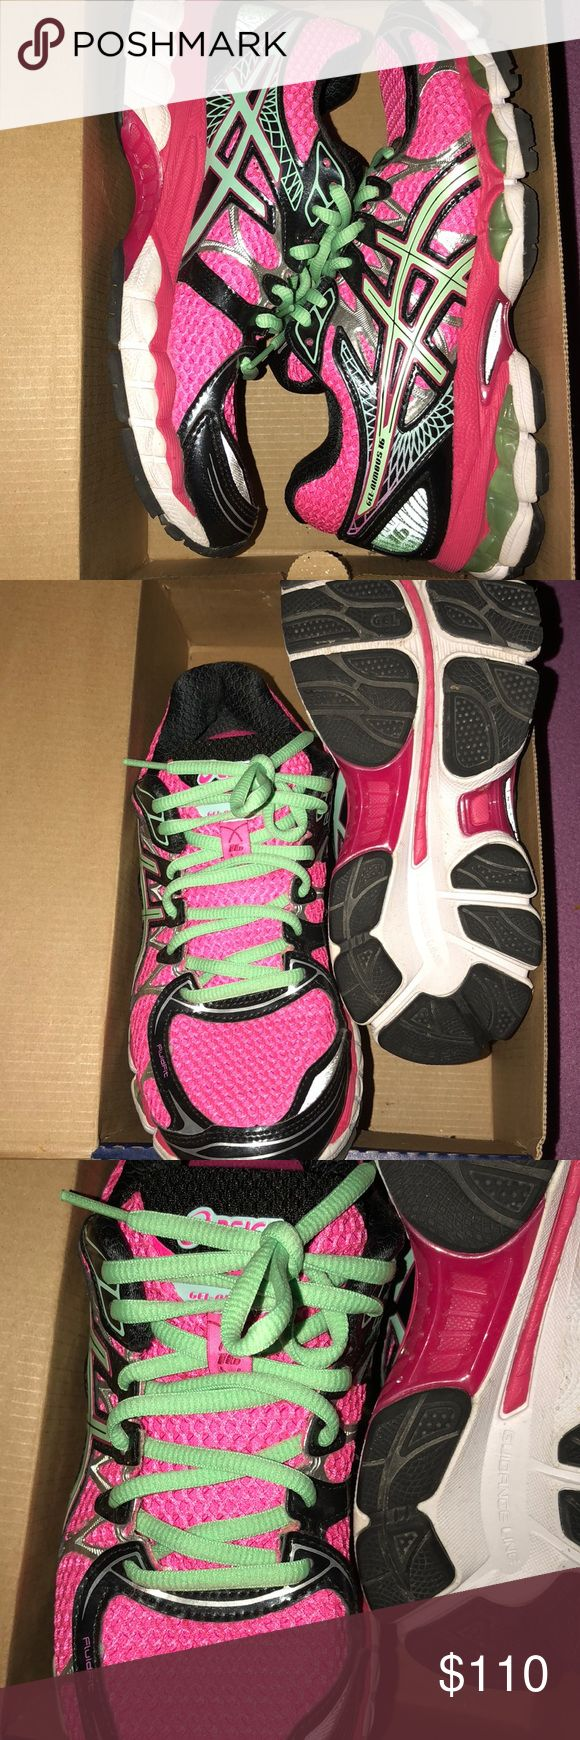 ASICS Nimbus 16 Pink and green nimbus 16 in a women's 6.5. Great for running and exercising. Regular B width. Comes in original box. Asics Shoes Sneakers